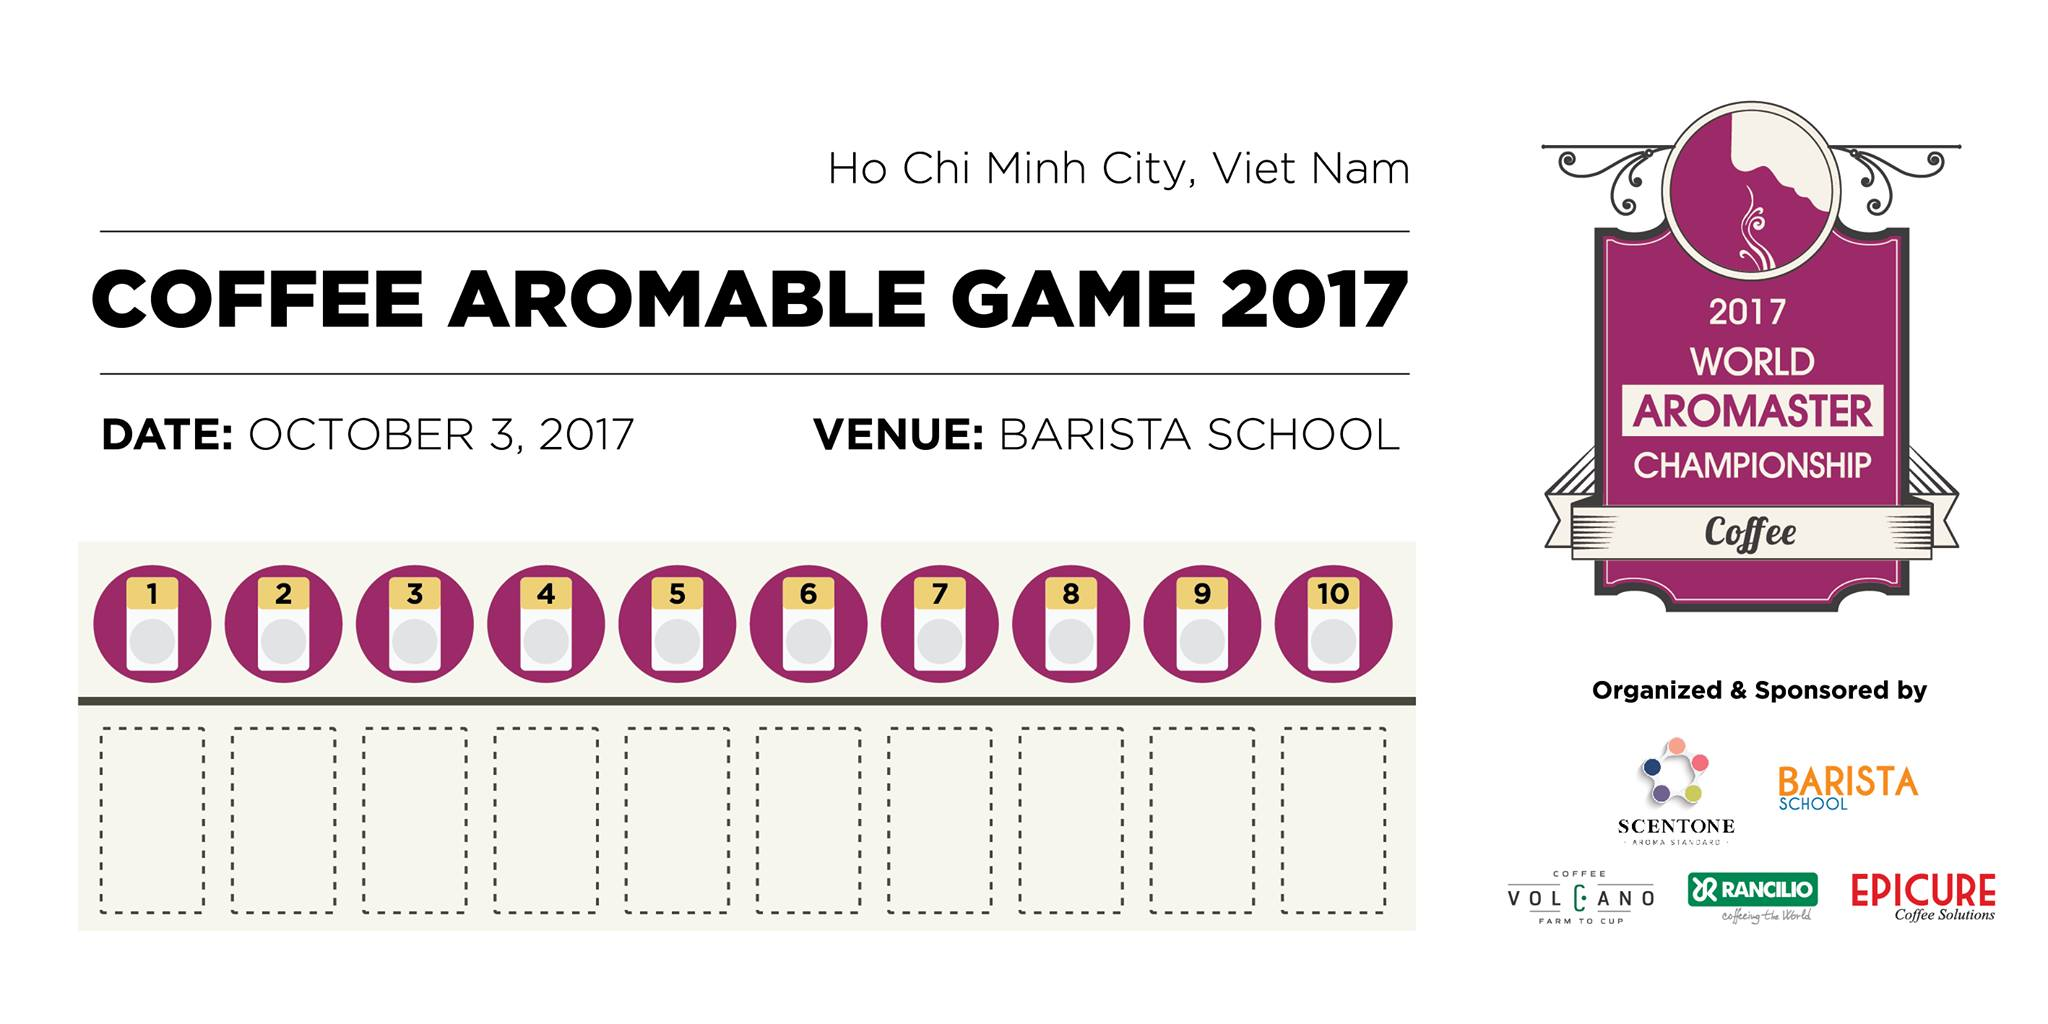 Coffee Aromable Game 2017